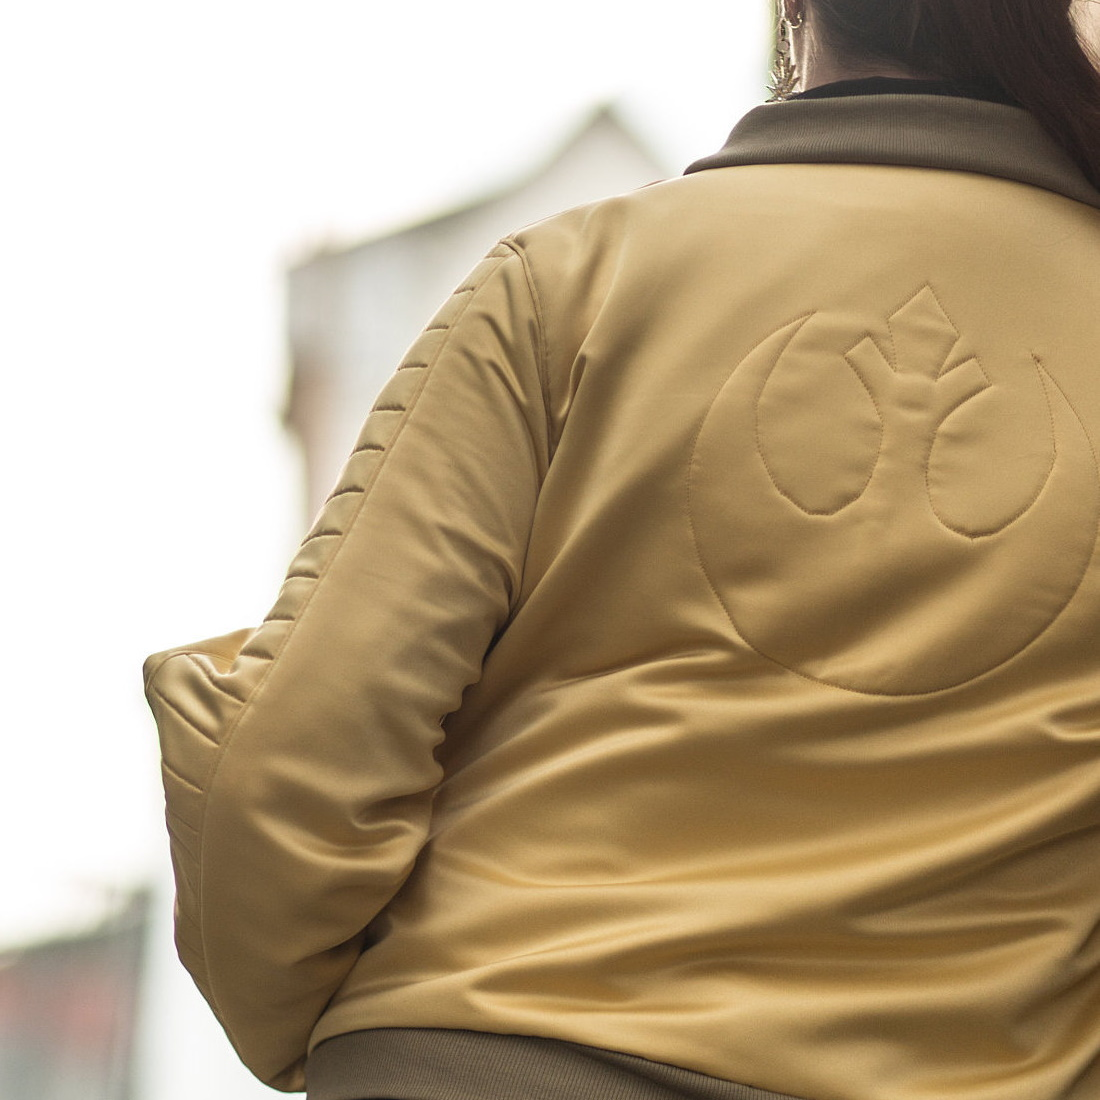 Star Wars Luke Skywalker Inspired Moon Ceremony Bomber Jacket by Etsy Seller Geekanista5